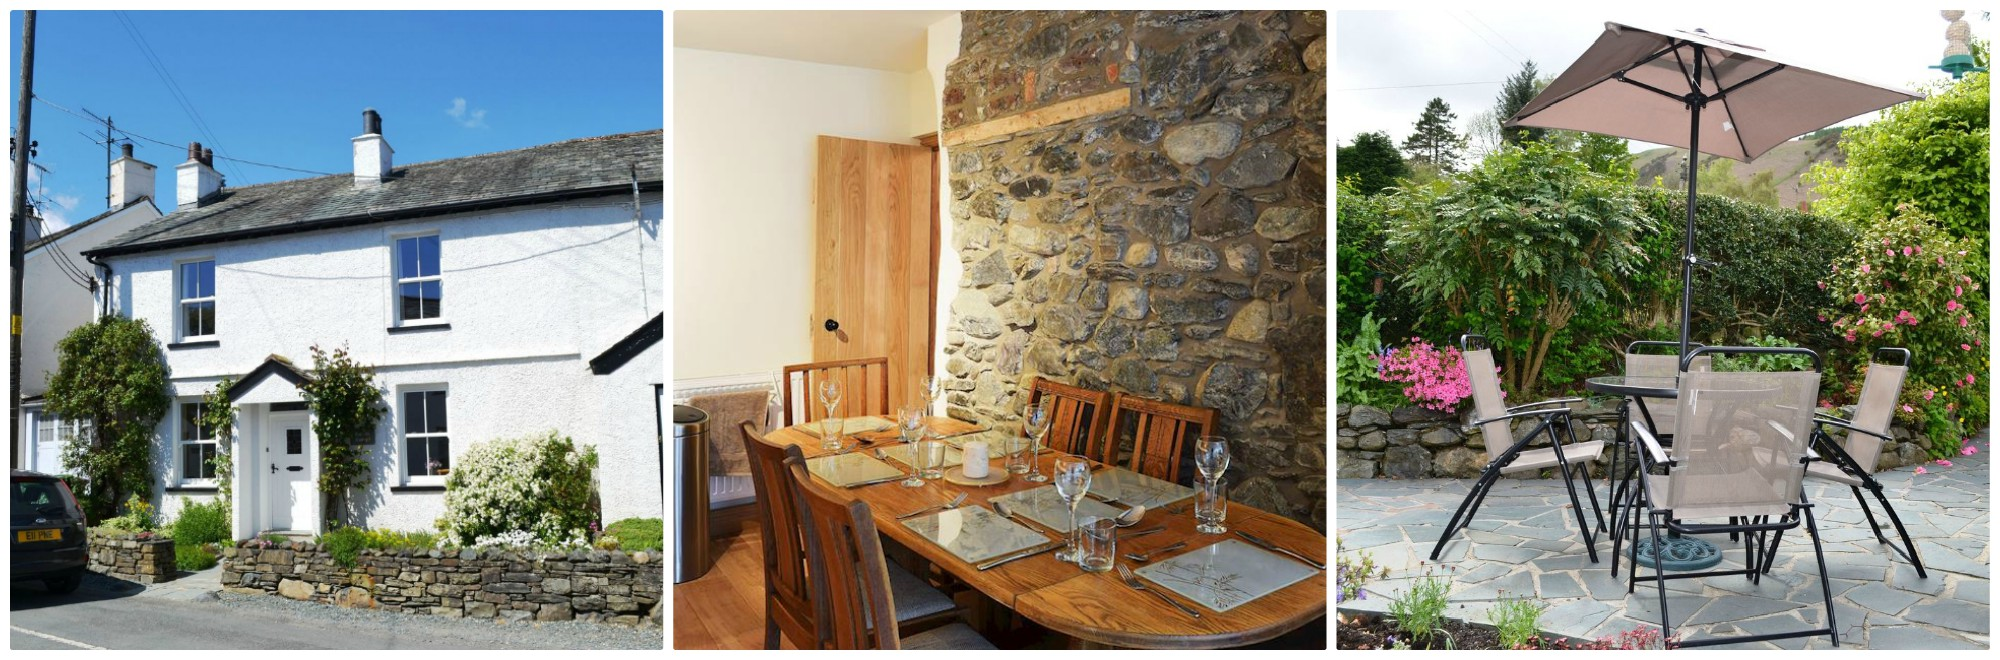 Catbells is a great mix of old and new - exposed stone walls and feature bedroom fireplaces add character to the modern updates and is a Visit England 4 star property